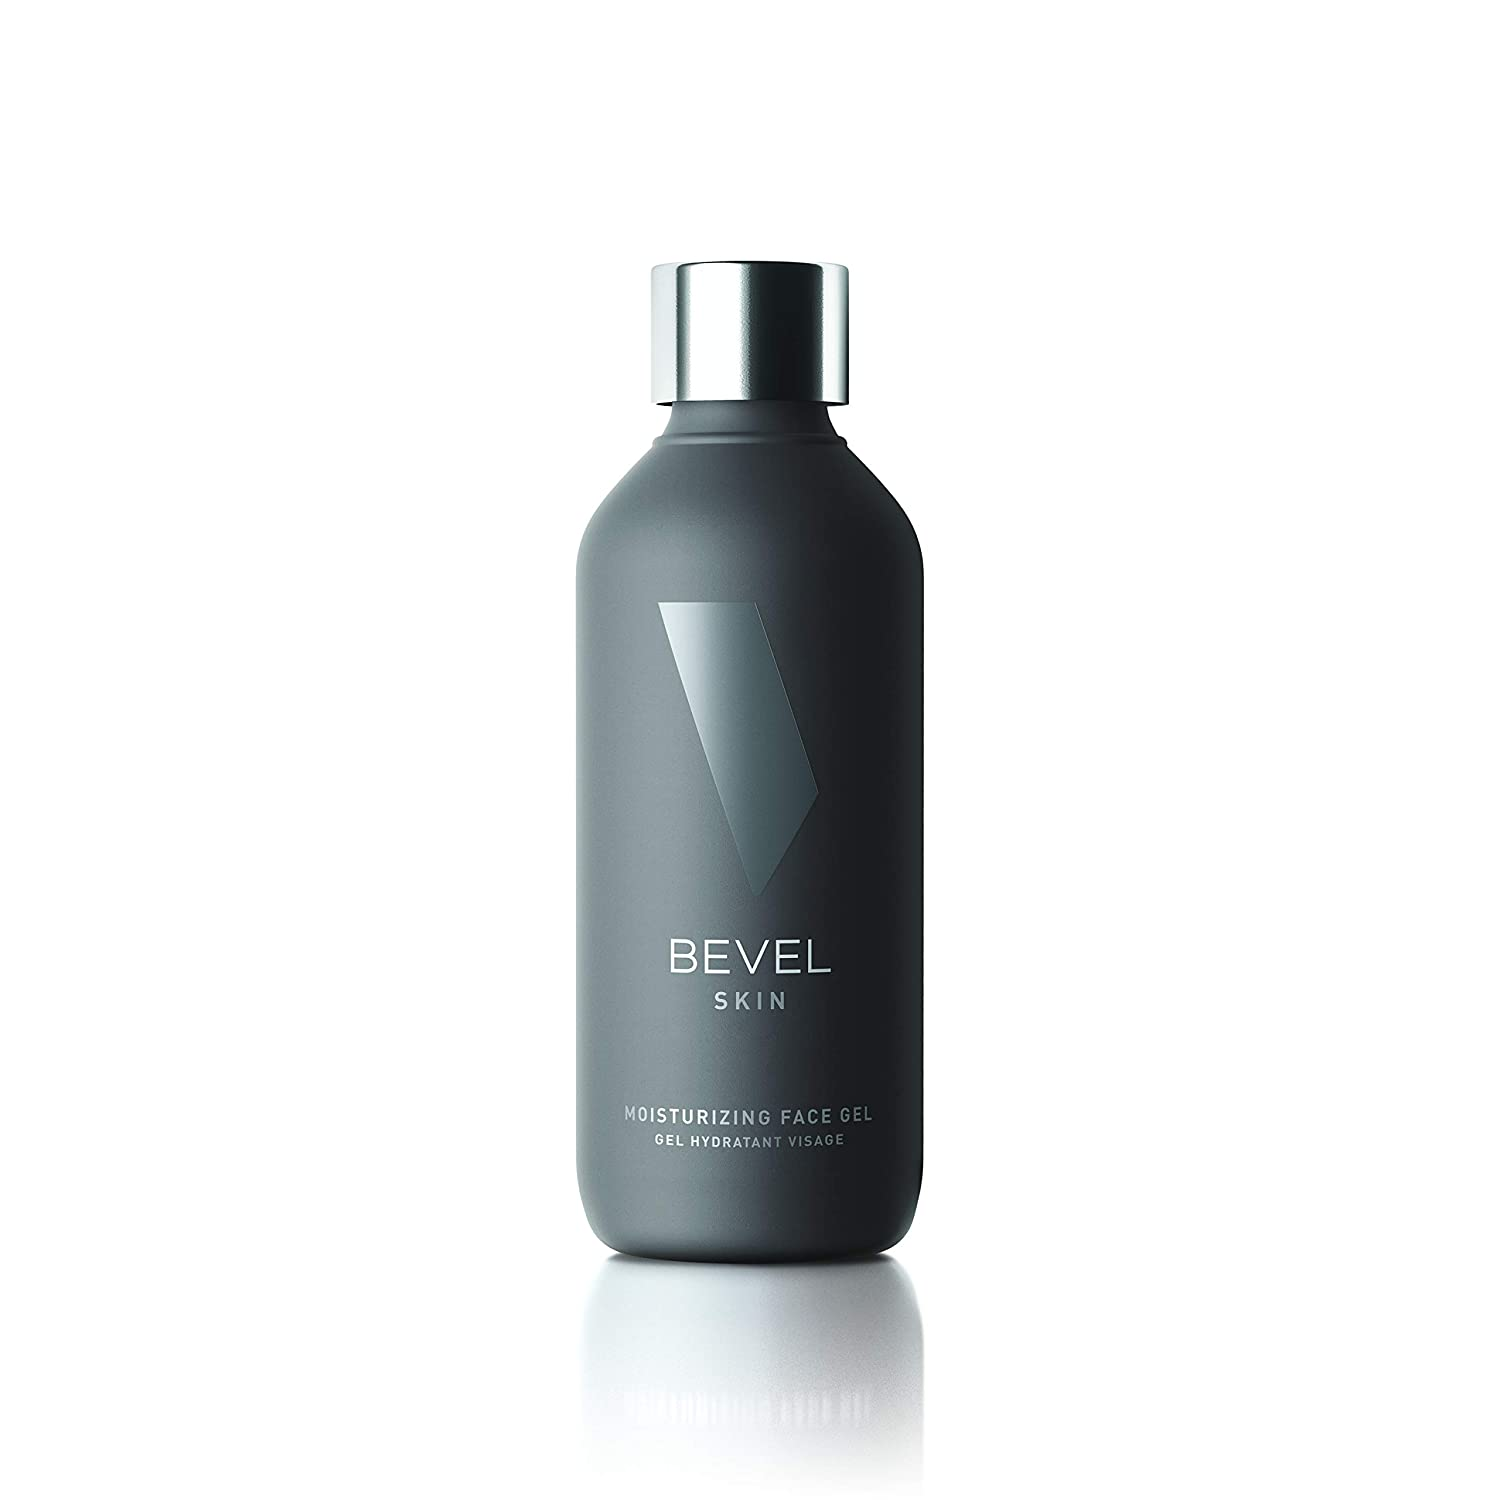 Bevel Moisturizing Face Gel, with Tea Tree Oil, Vitamic C, and Algae Extract, Helps Reduce Dryness and Oiliness, Good for Sensitive Skin, 4 fl. oz